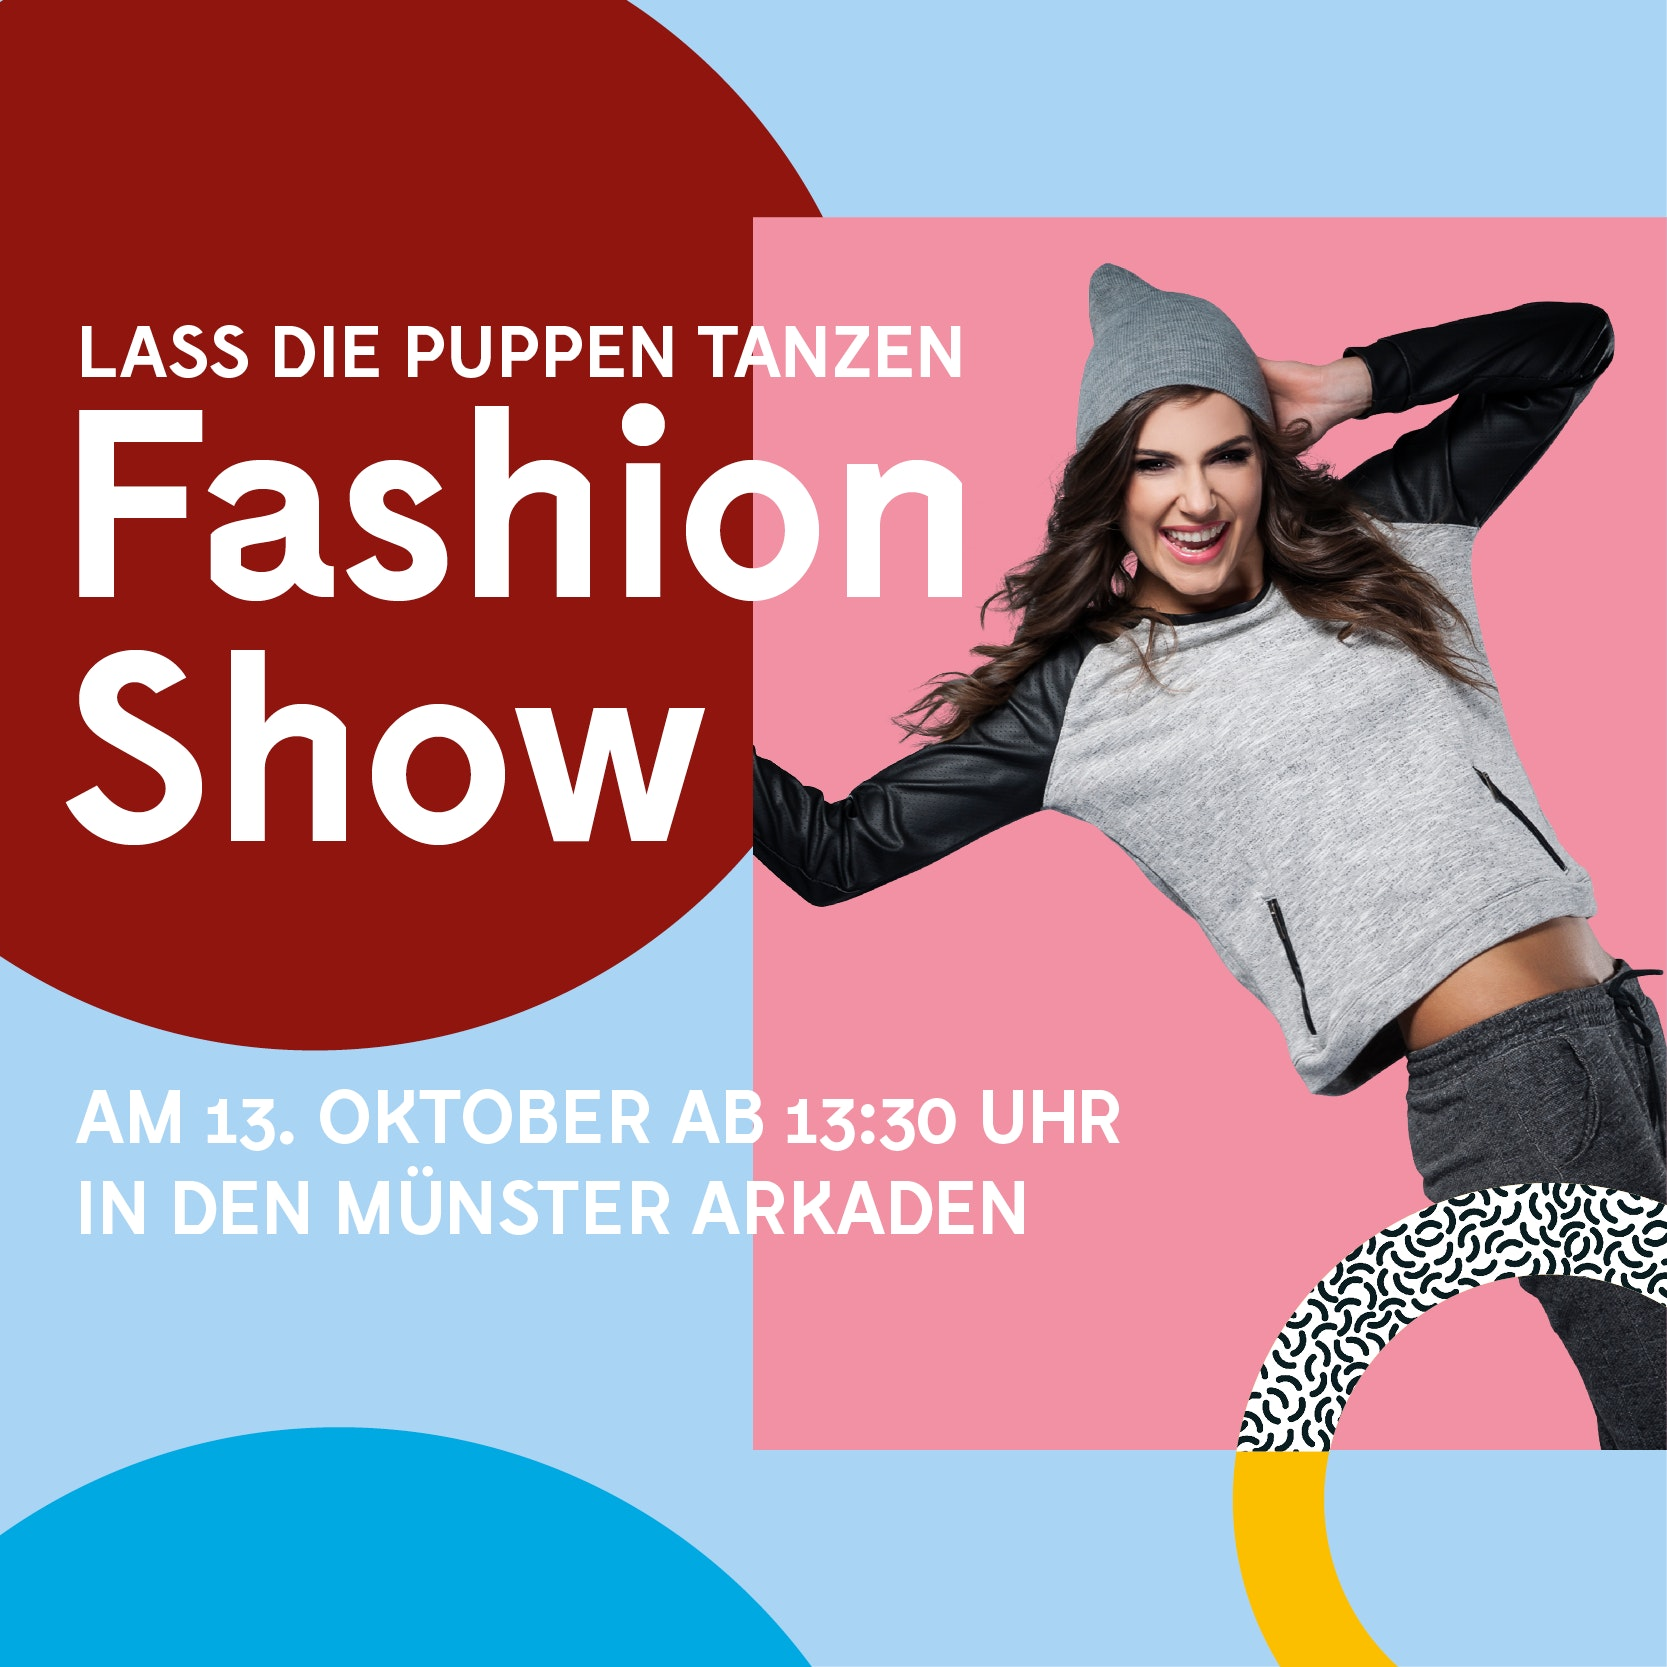 Fashion Show puppen tanzen Münster Arkaden